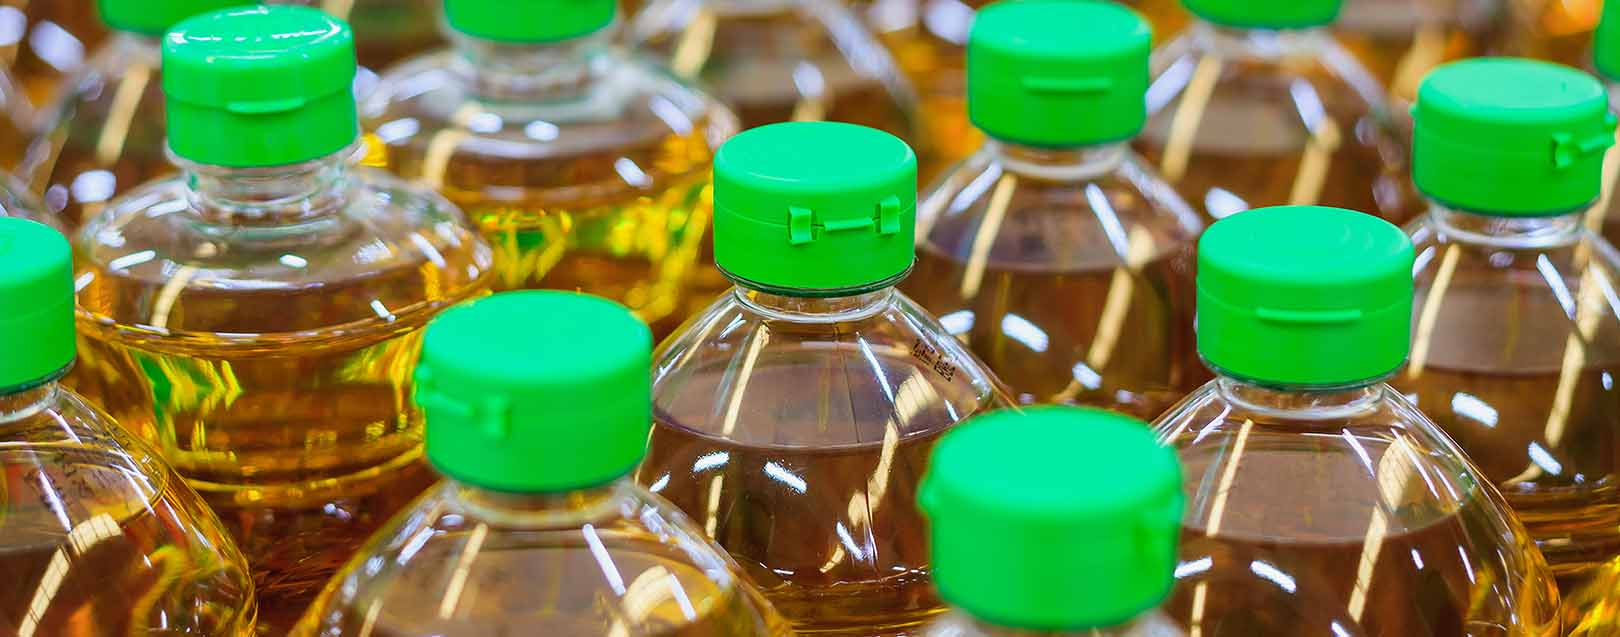 Vegetable oil imports up 28% in February